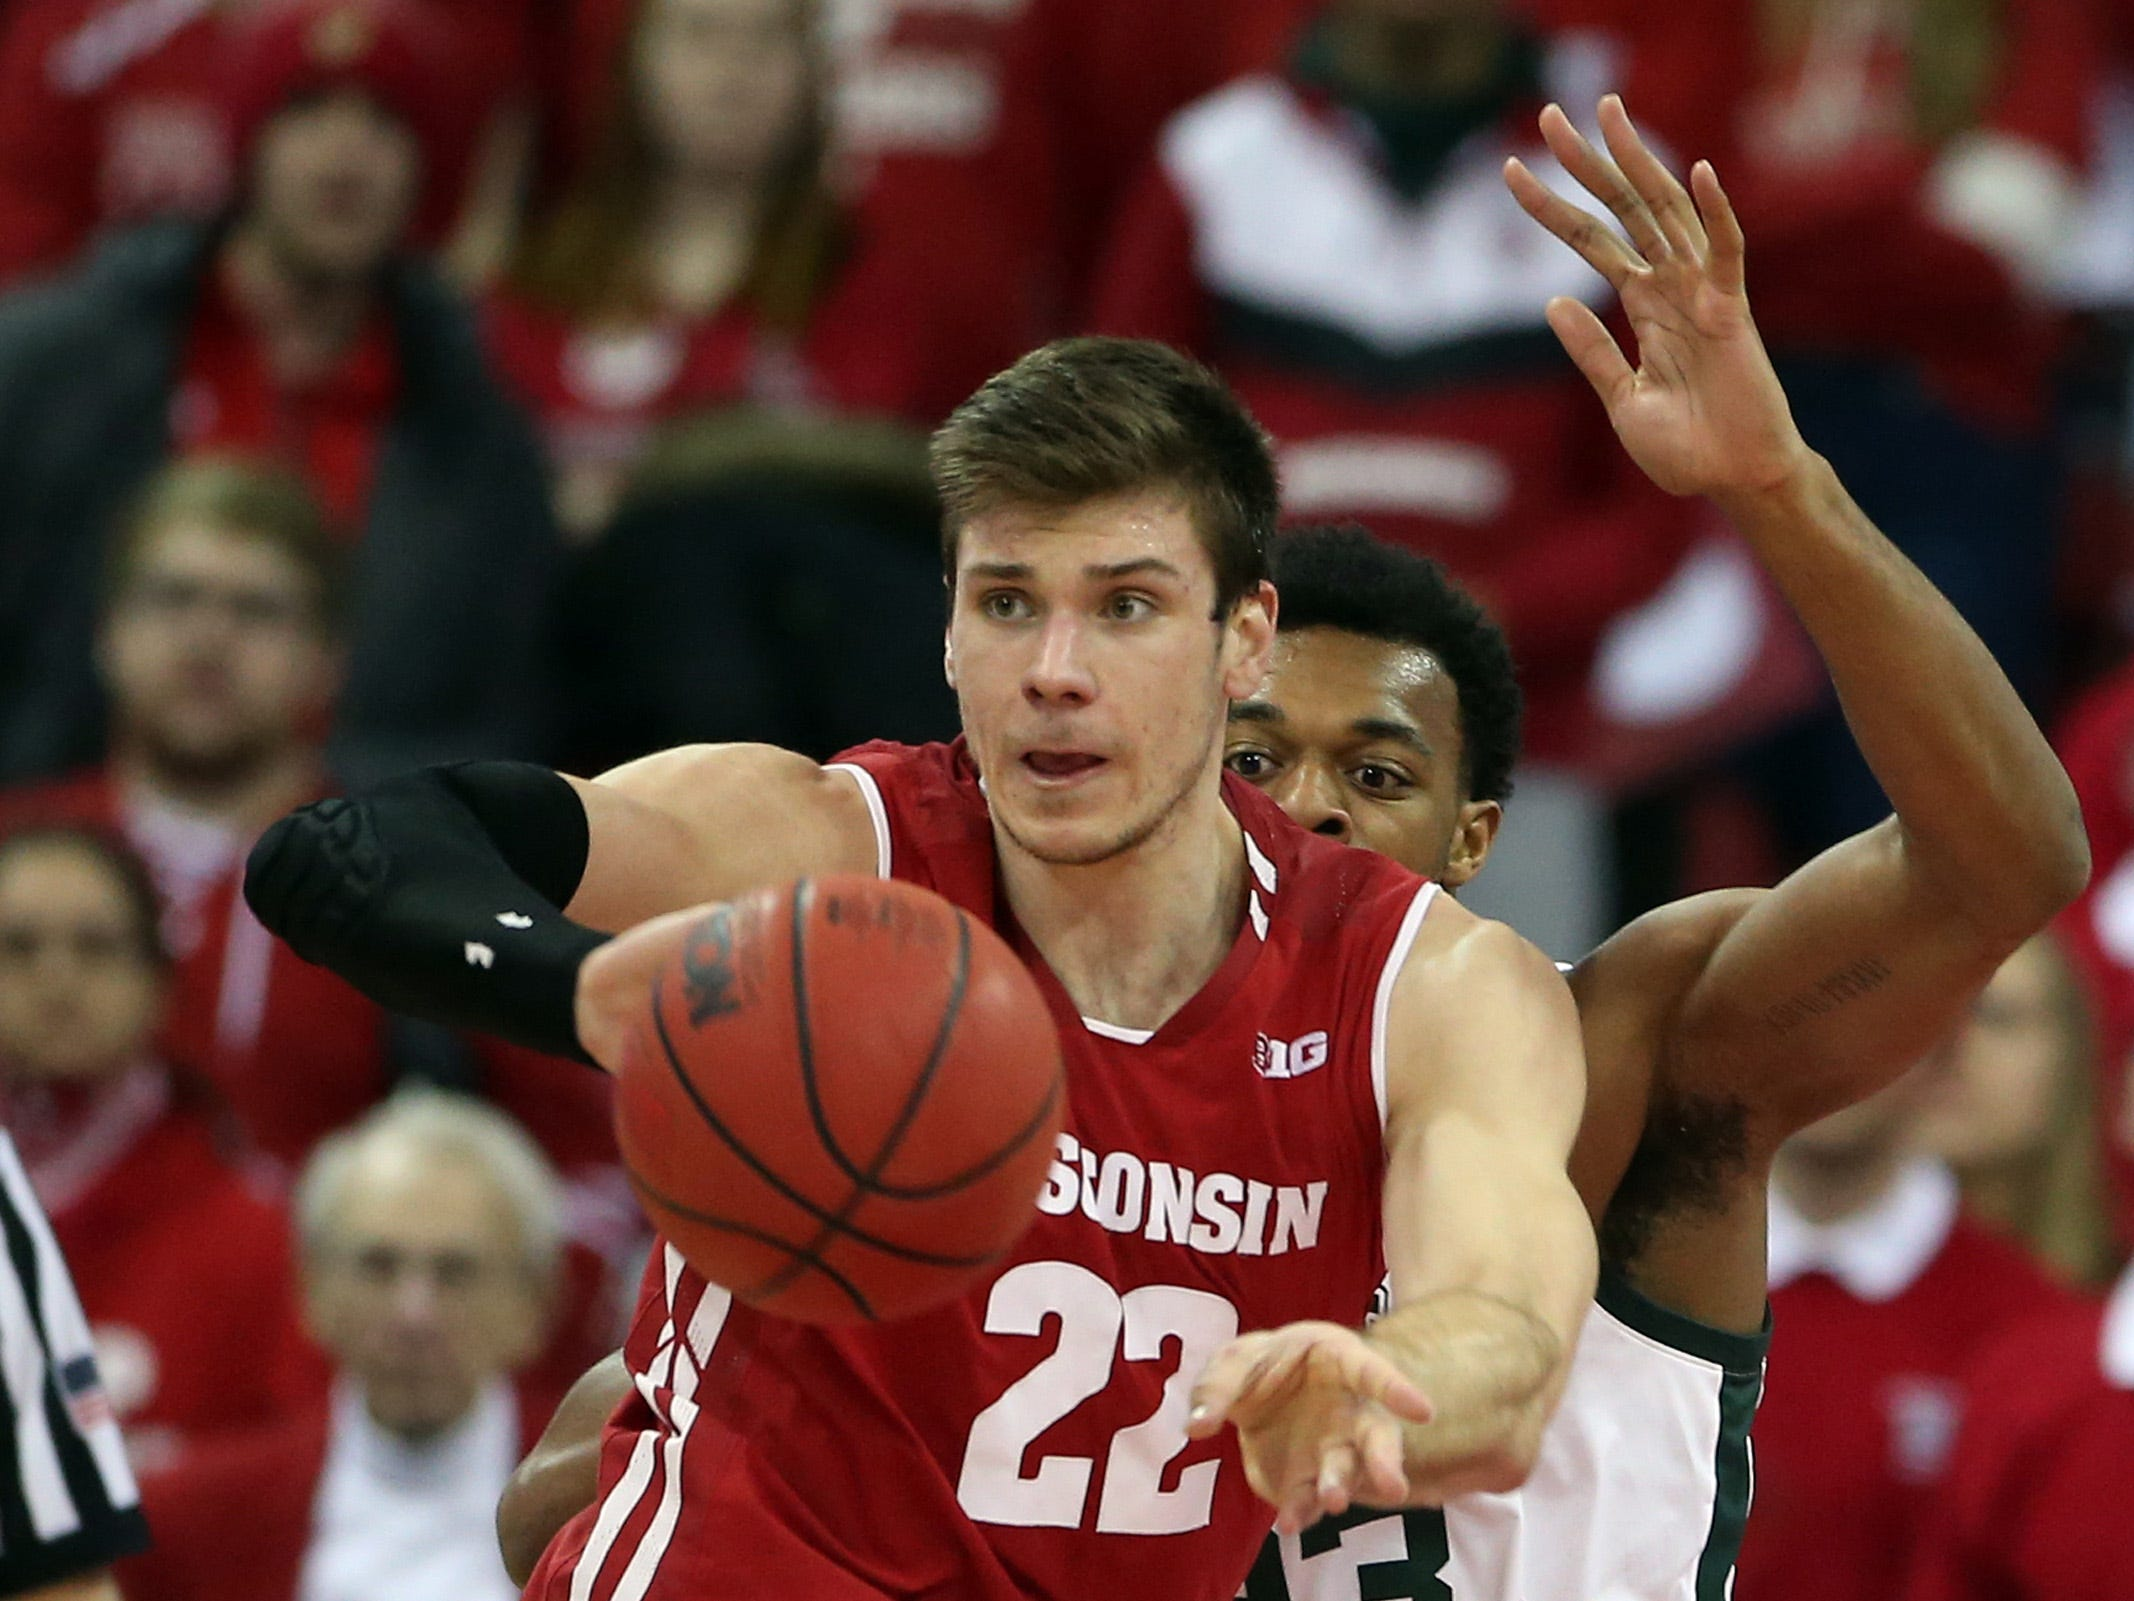 Wisconsin Badgers forward Ethan Happ (22) passes the ball as Michigan State Spartans forward Xavier Tillman (23) defends during the first half at the Kohl Center.